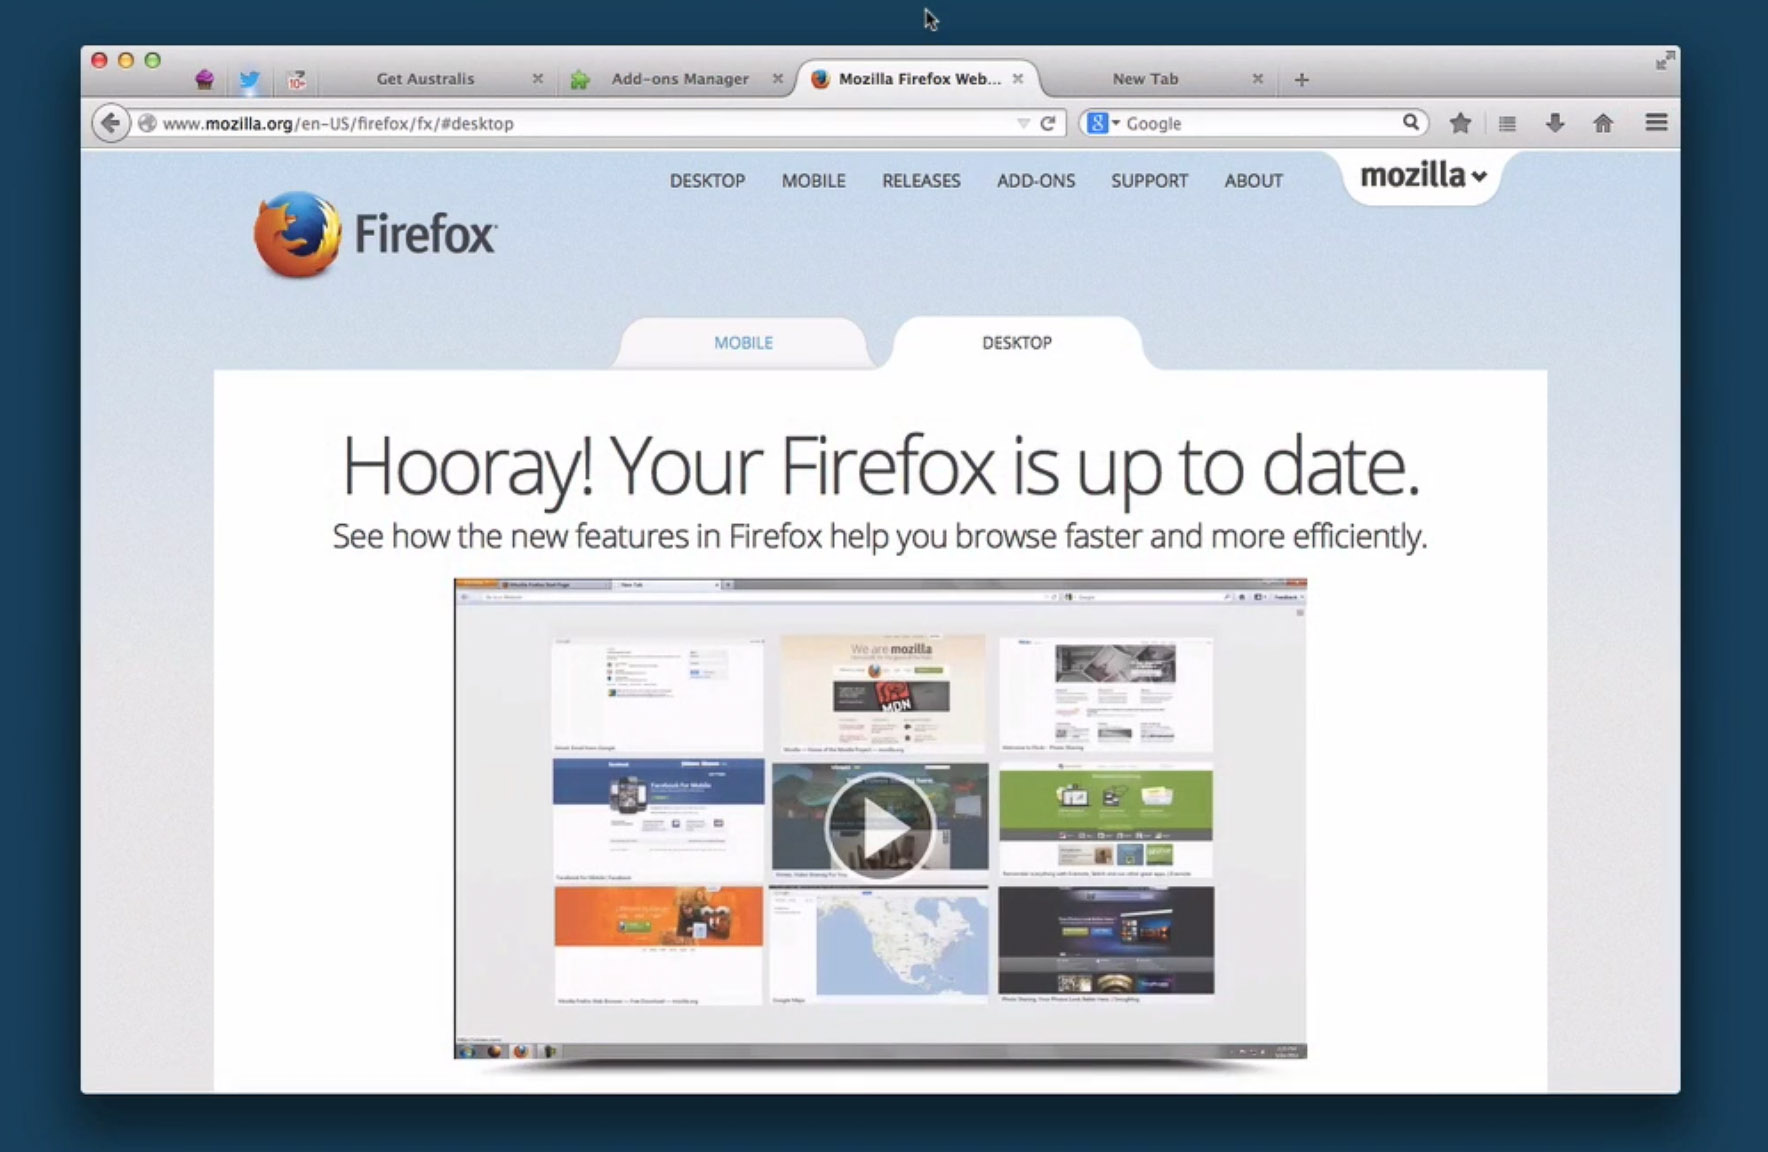 Australis, Mozilla's overhaul of Firefox's user interface.